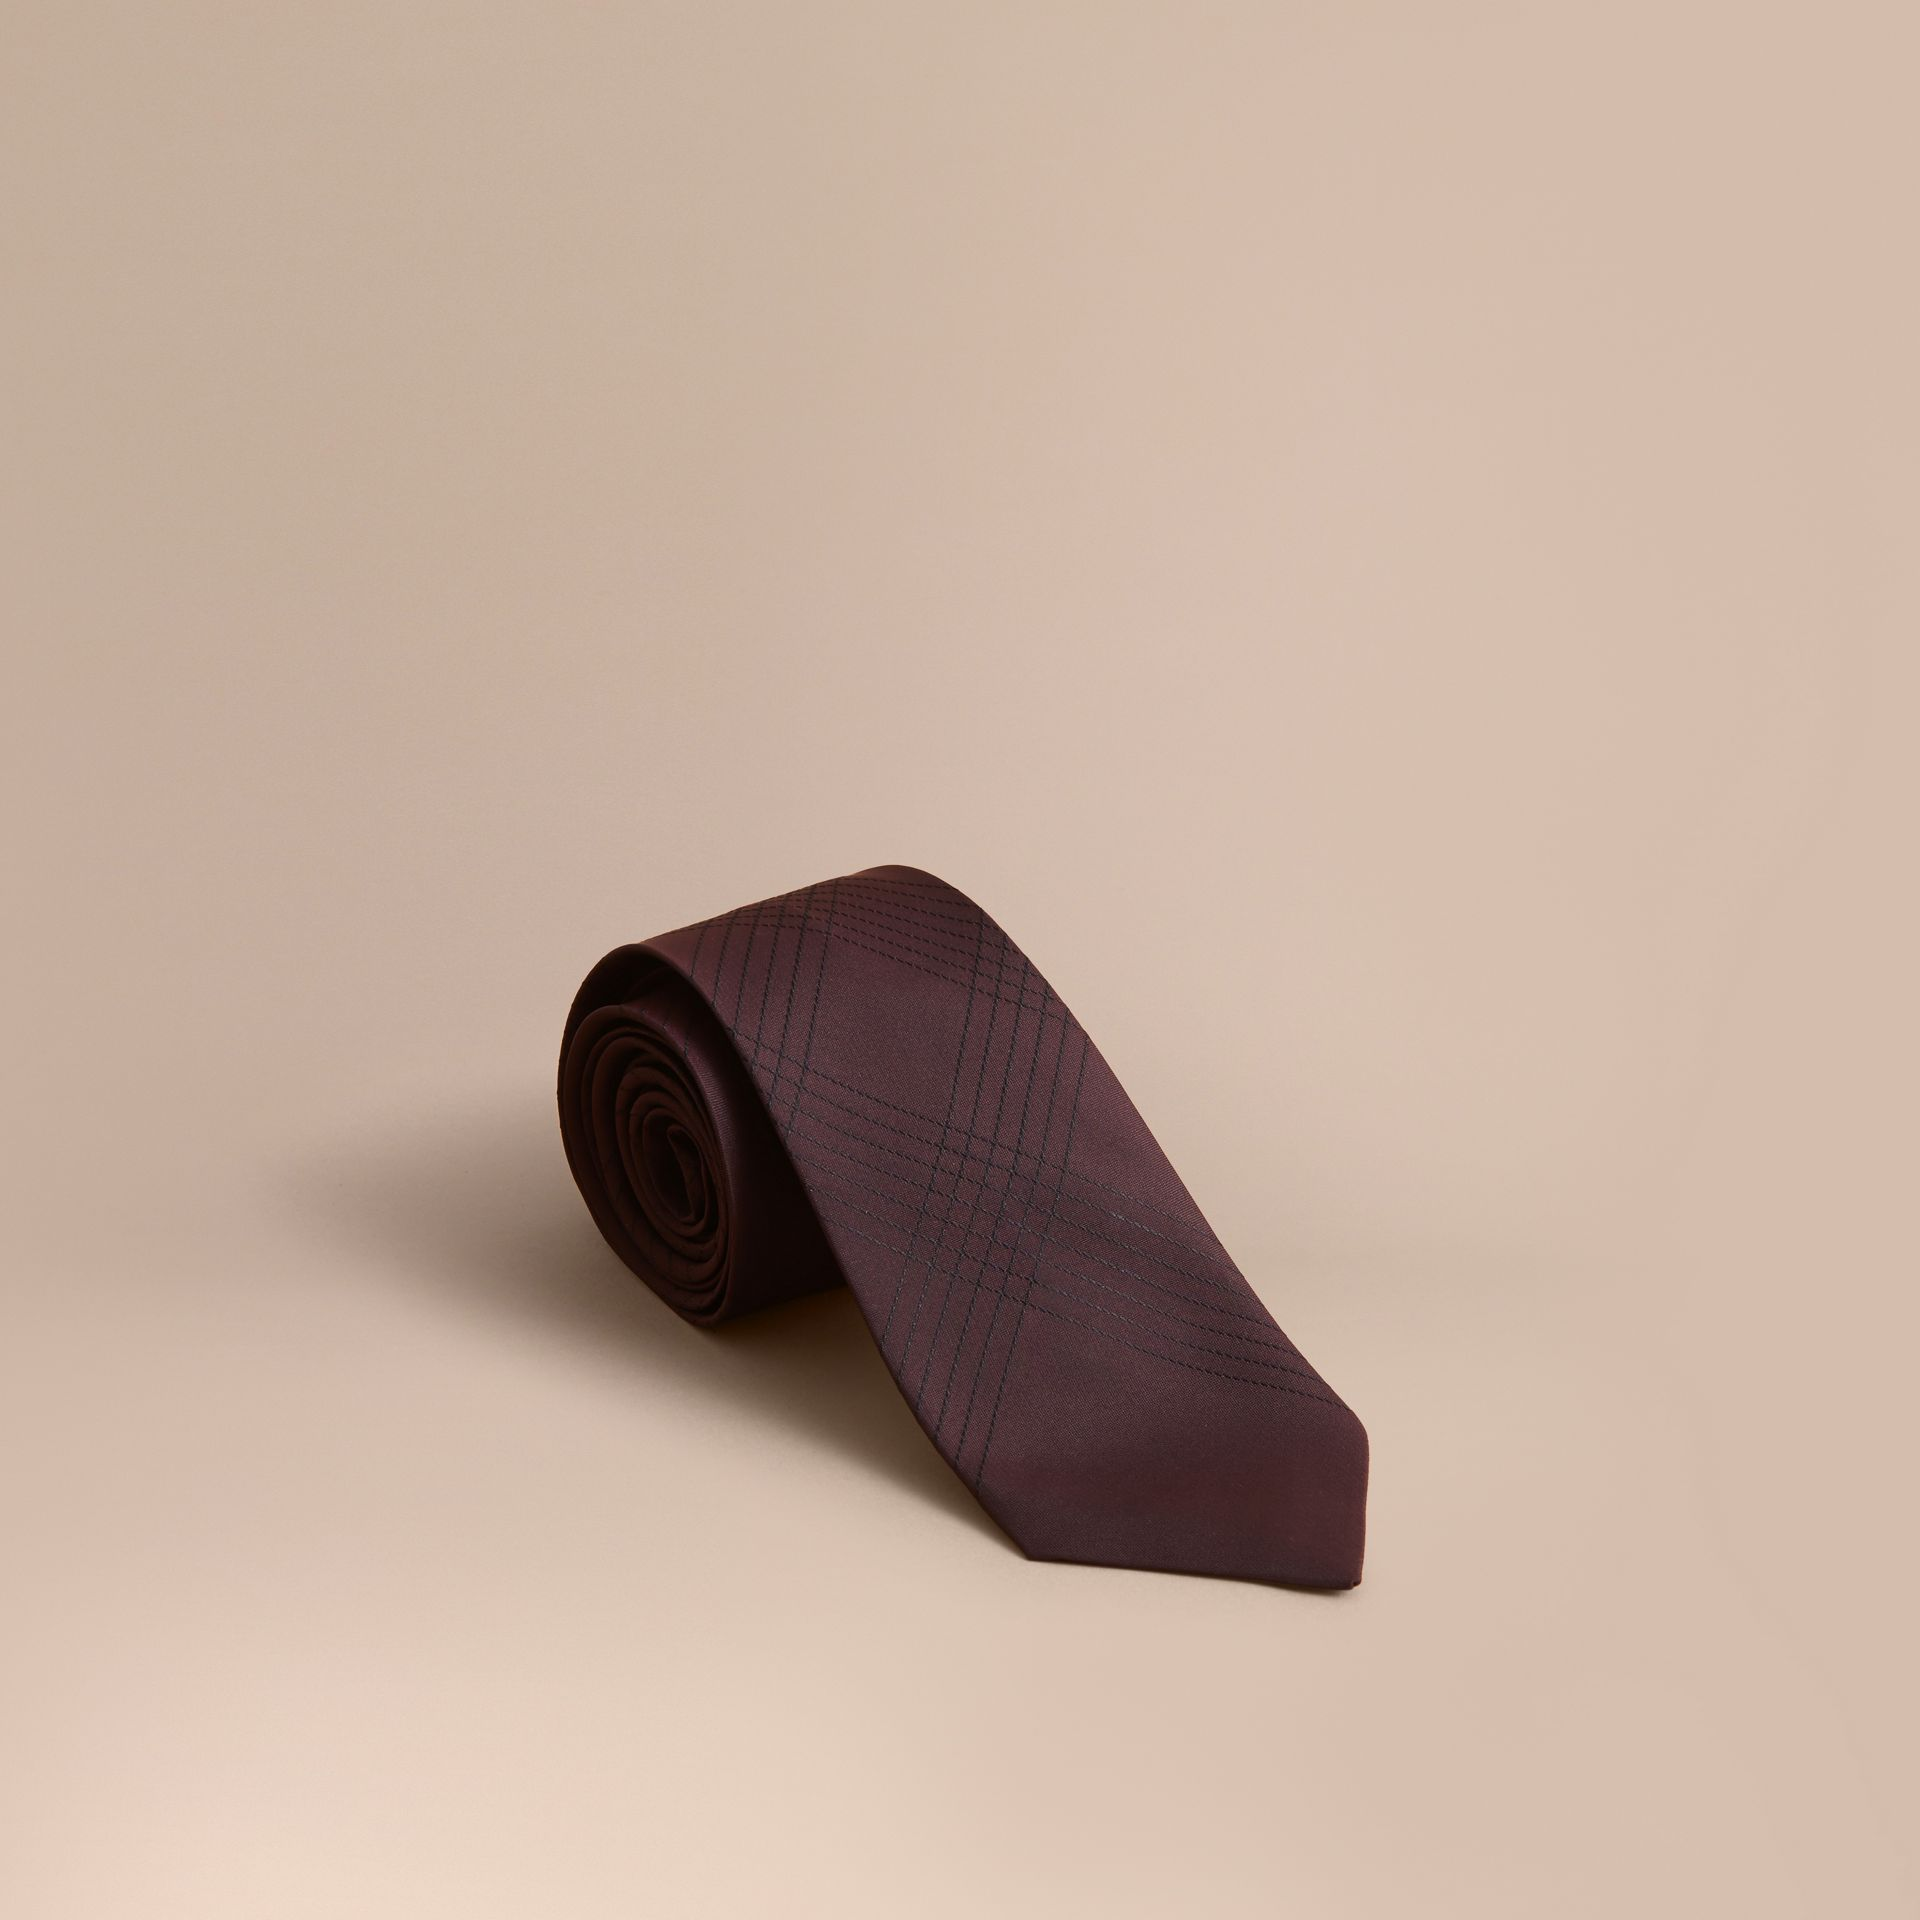 Modern Cut Topstitched Check Silk Tie in Burgundy - Men | Burberry - gallery image 1